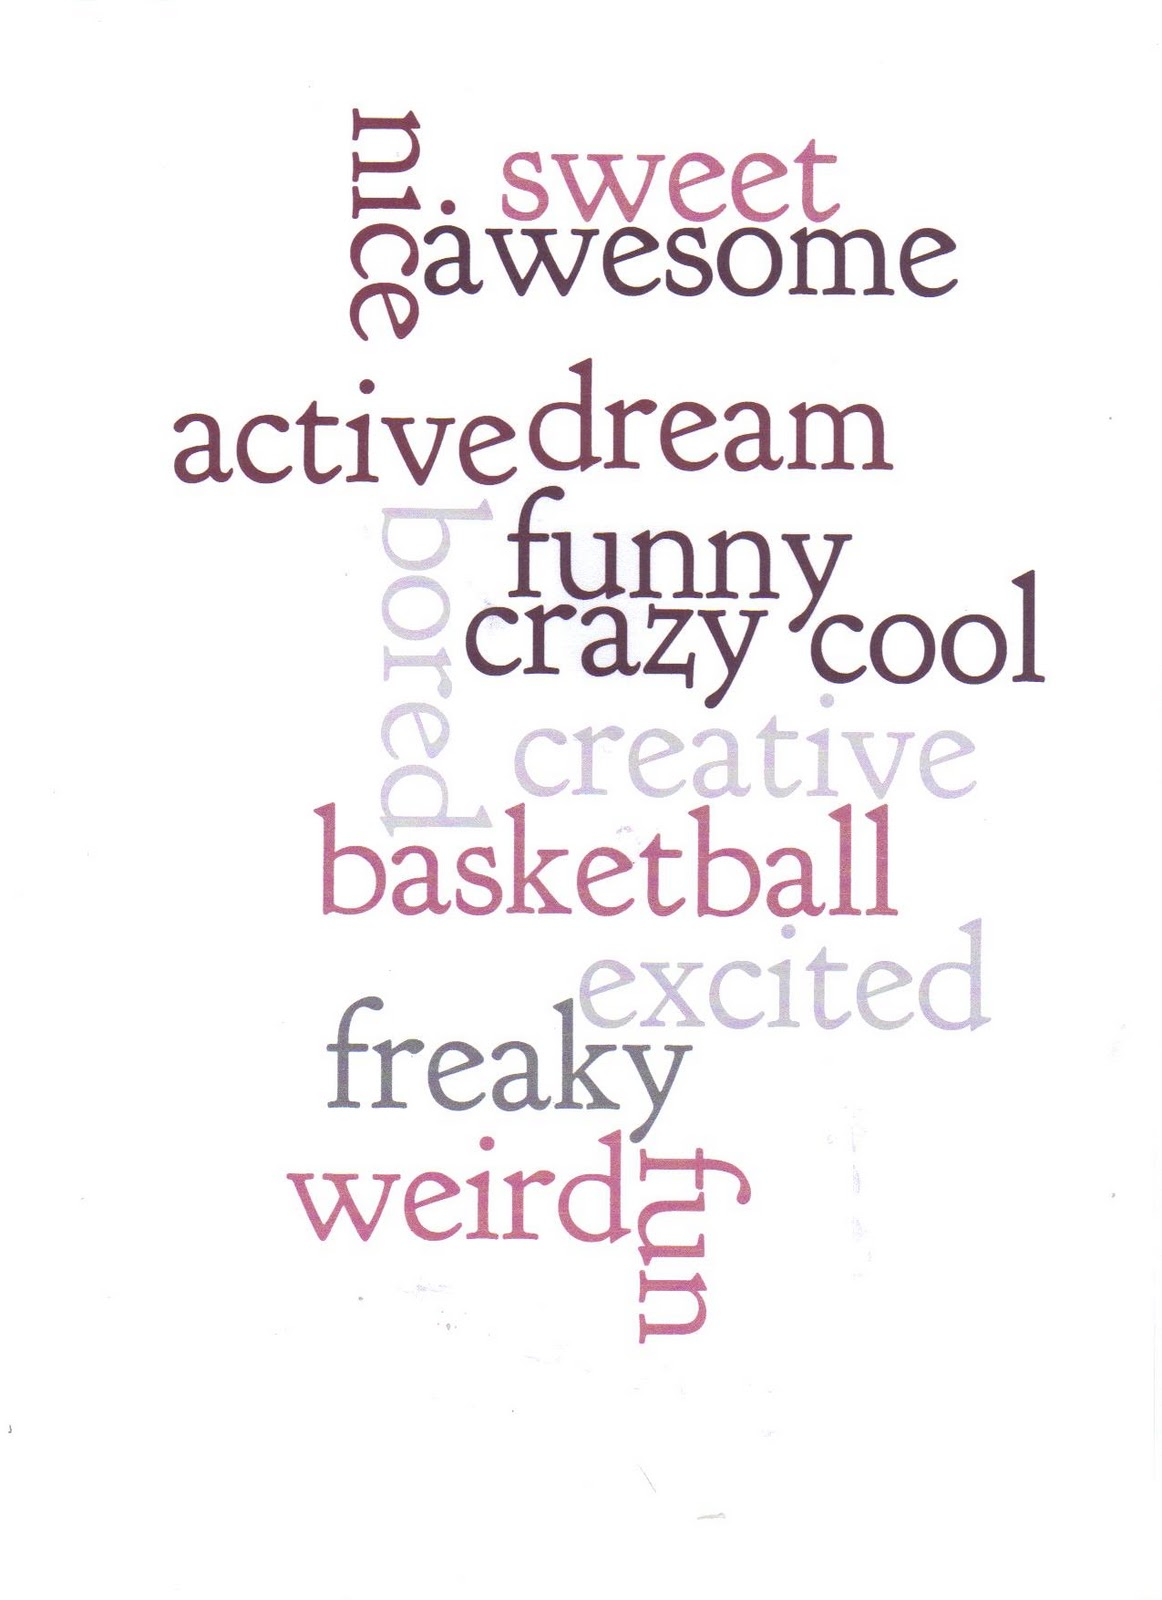 hello words that describe me words that describe me